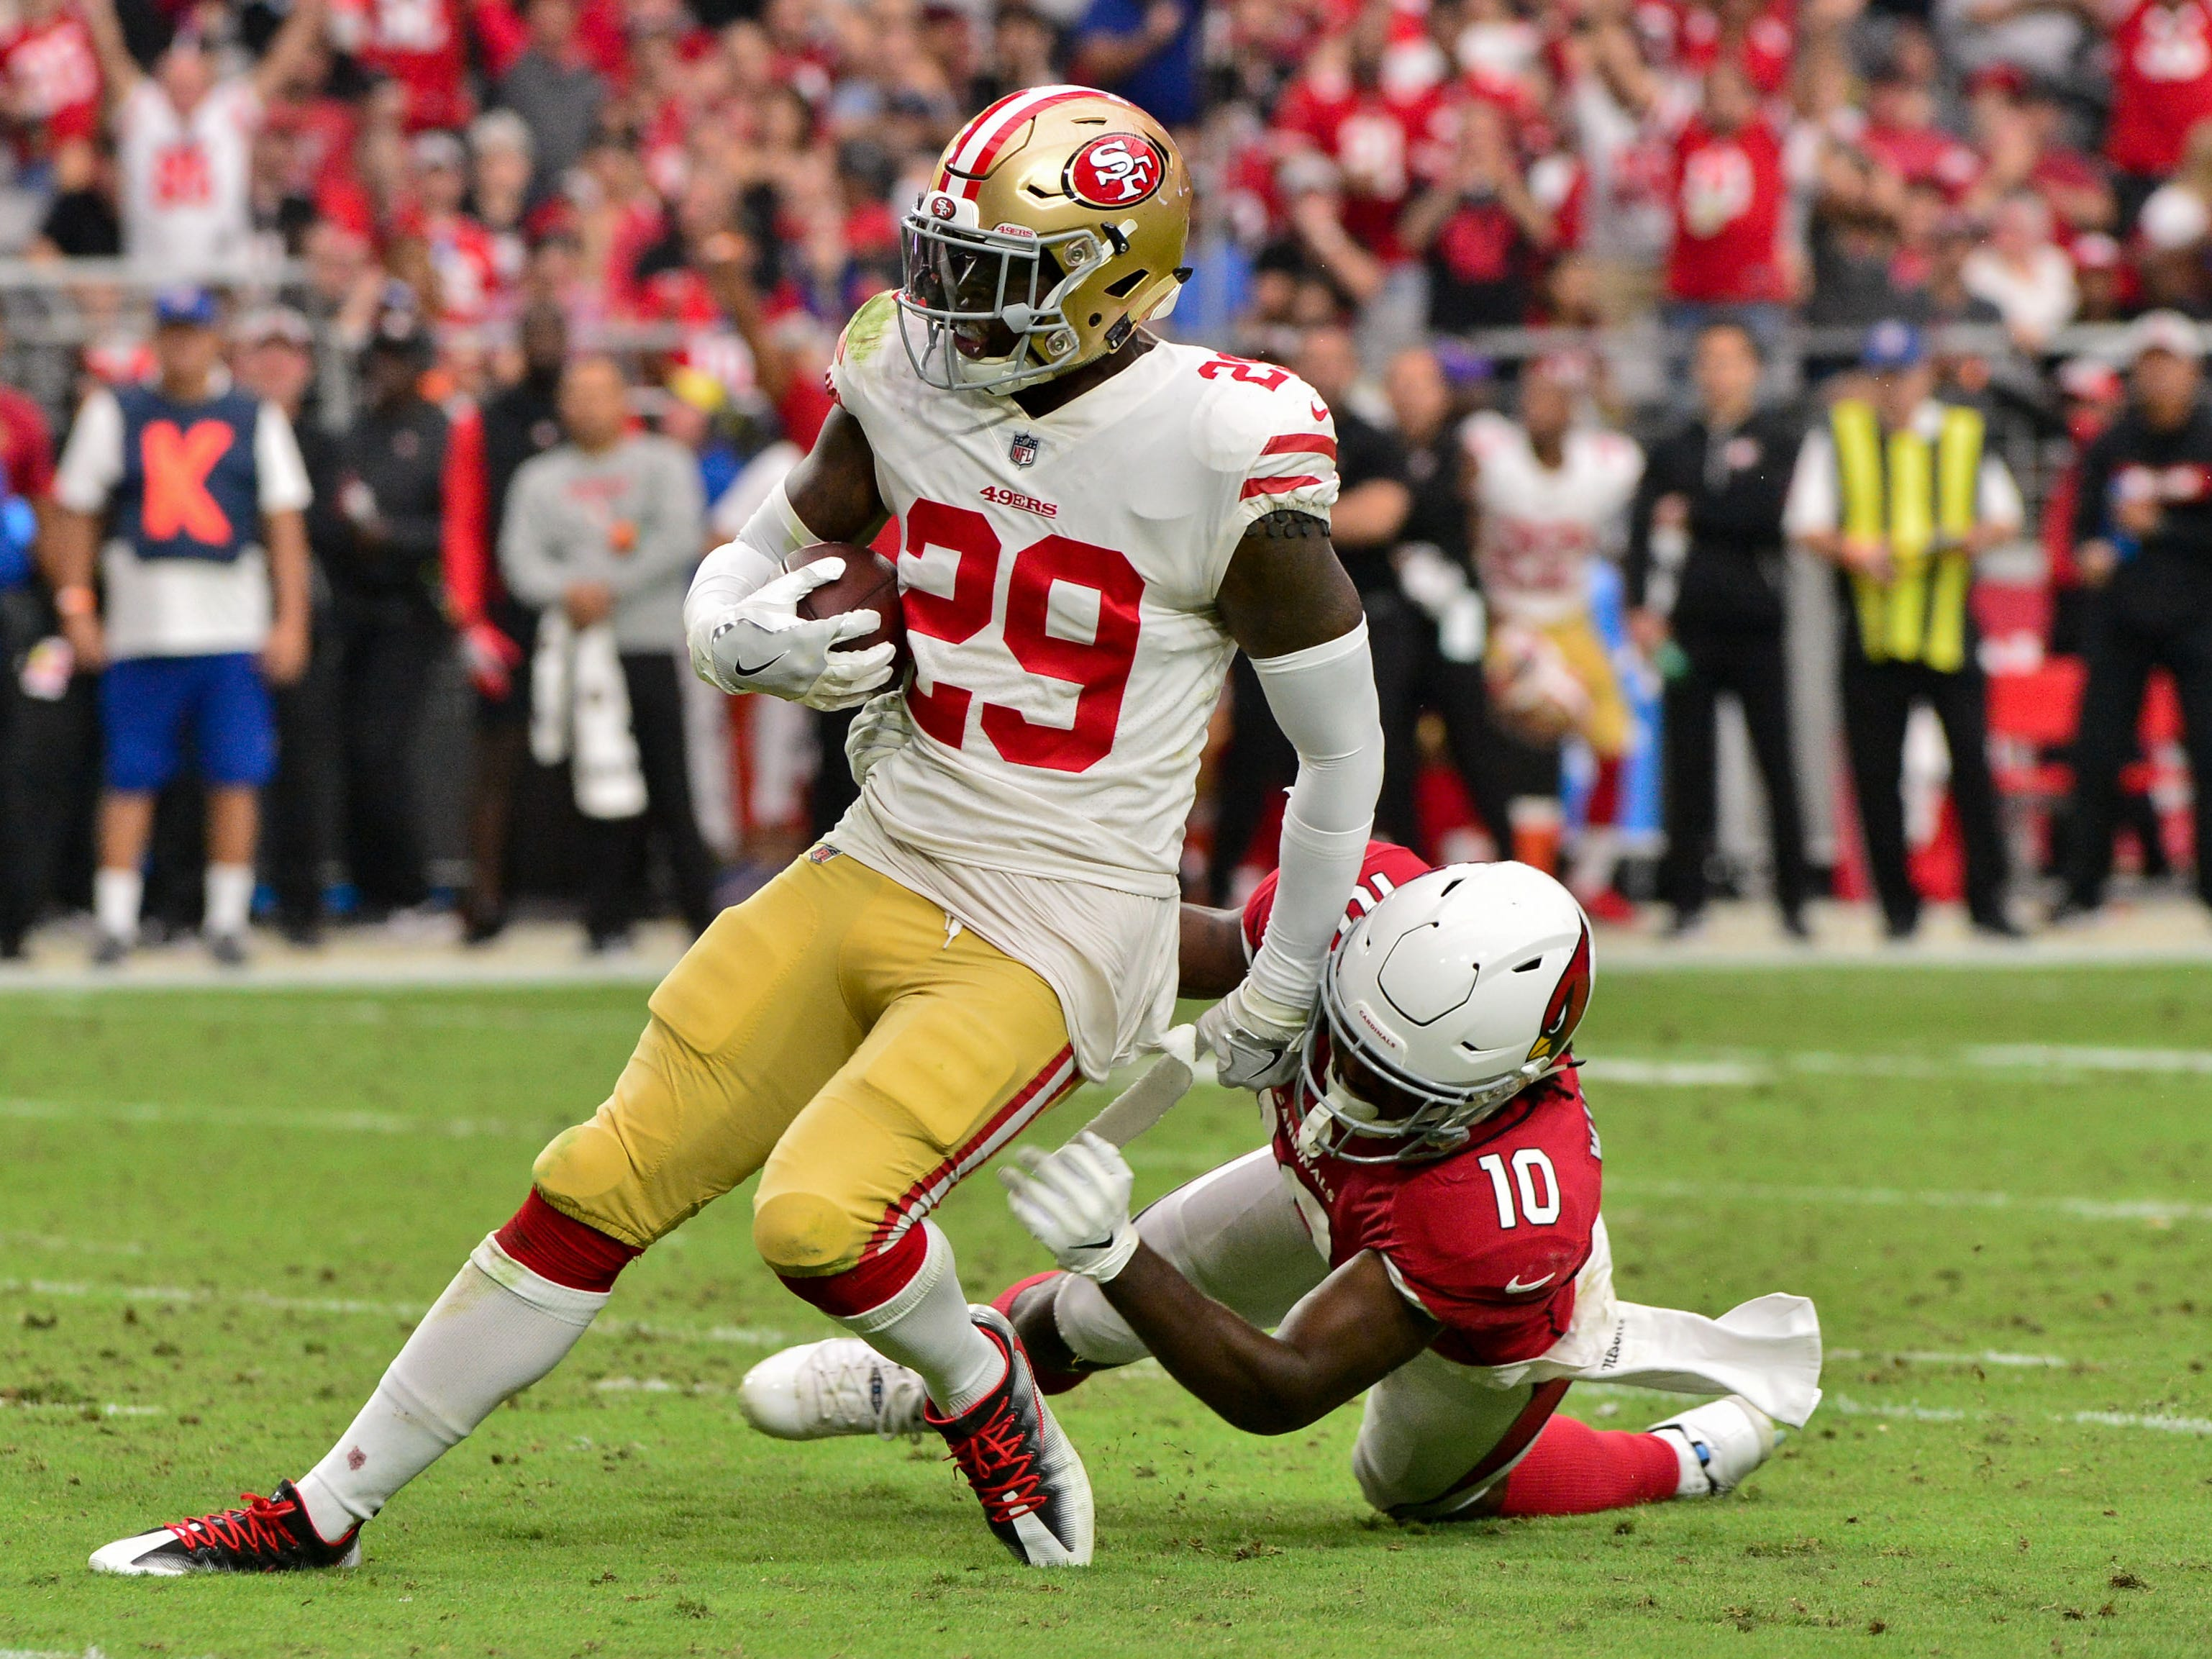 Oct 28, 2018; Glendale, AZ, USA; San Francisco 49ers safety Jaquiski Tartt (29) breaks a tackle from Arizona Cardinals wide receiver Chad Williams (10) while returning an interception during the first half at State Farm Stadium.